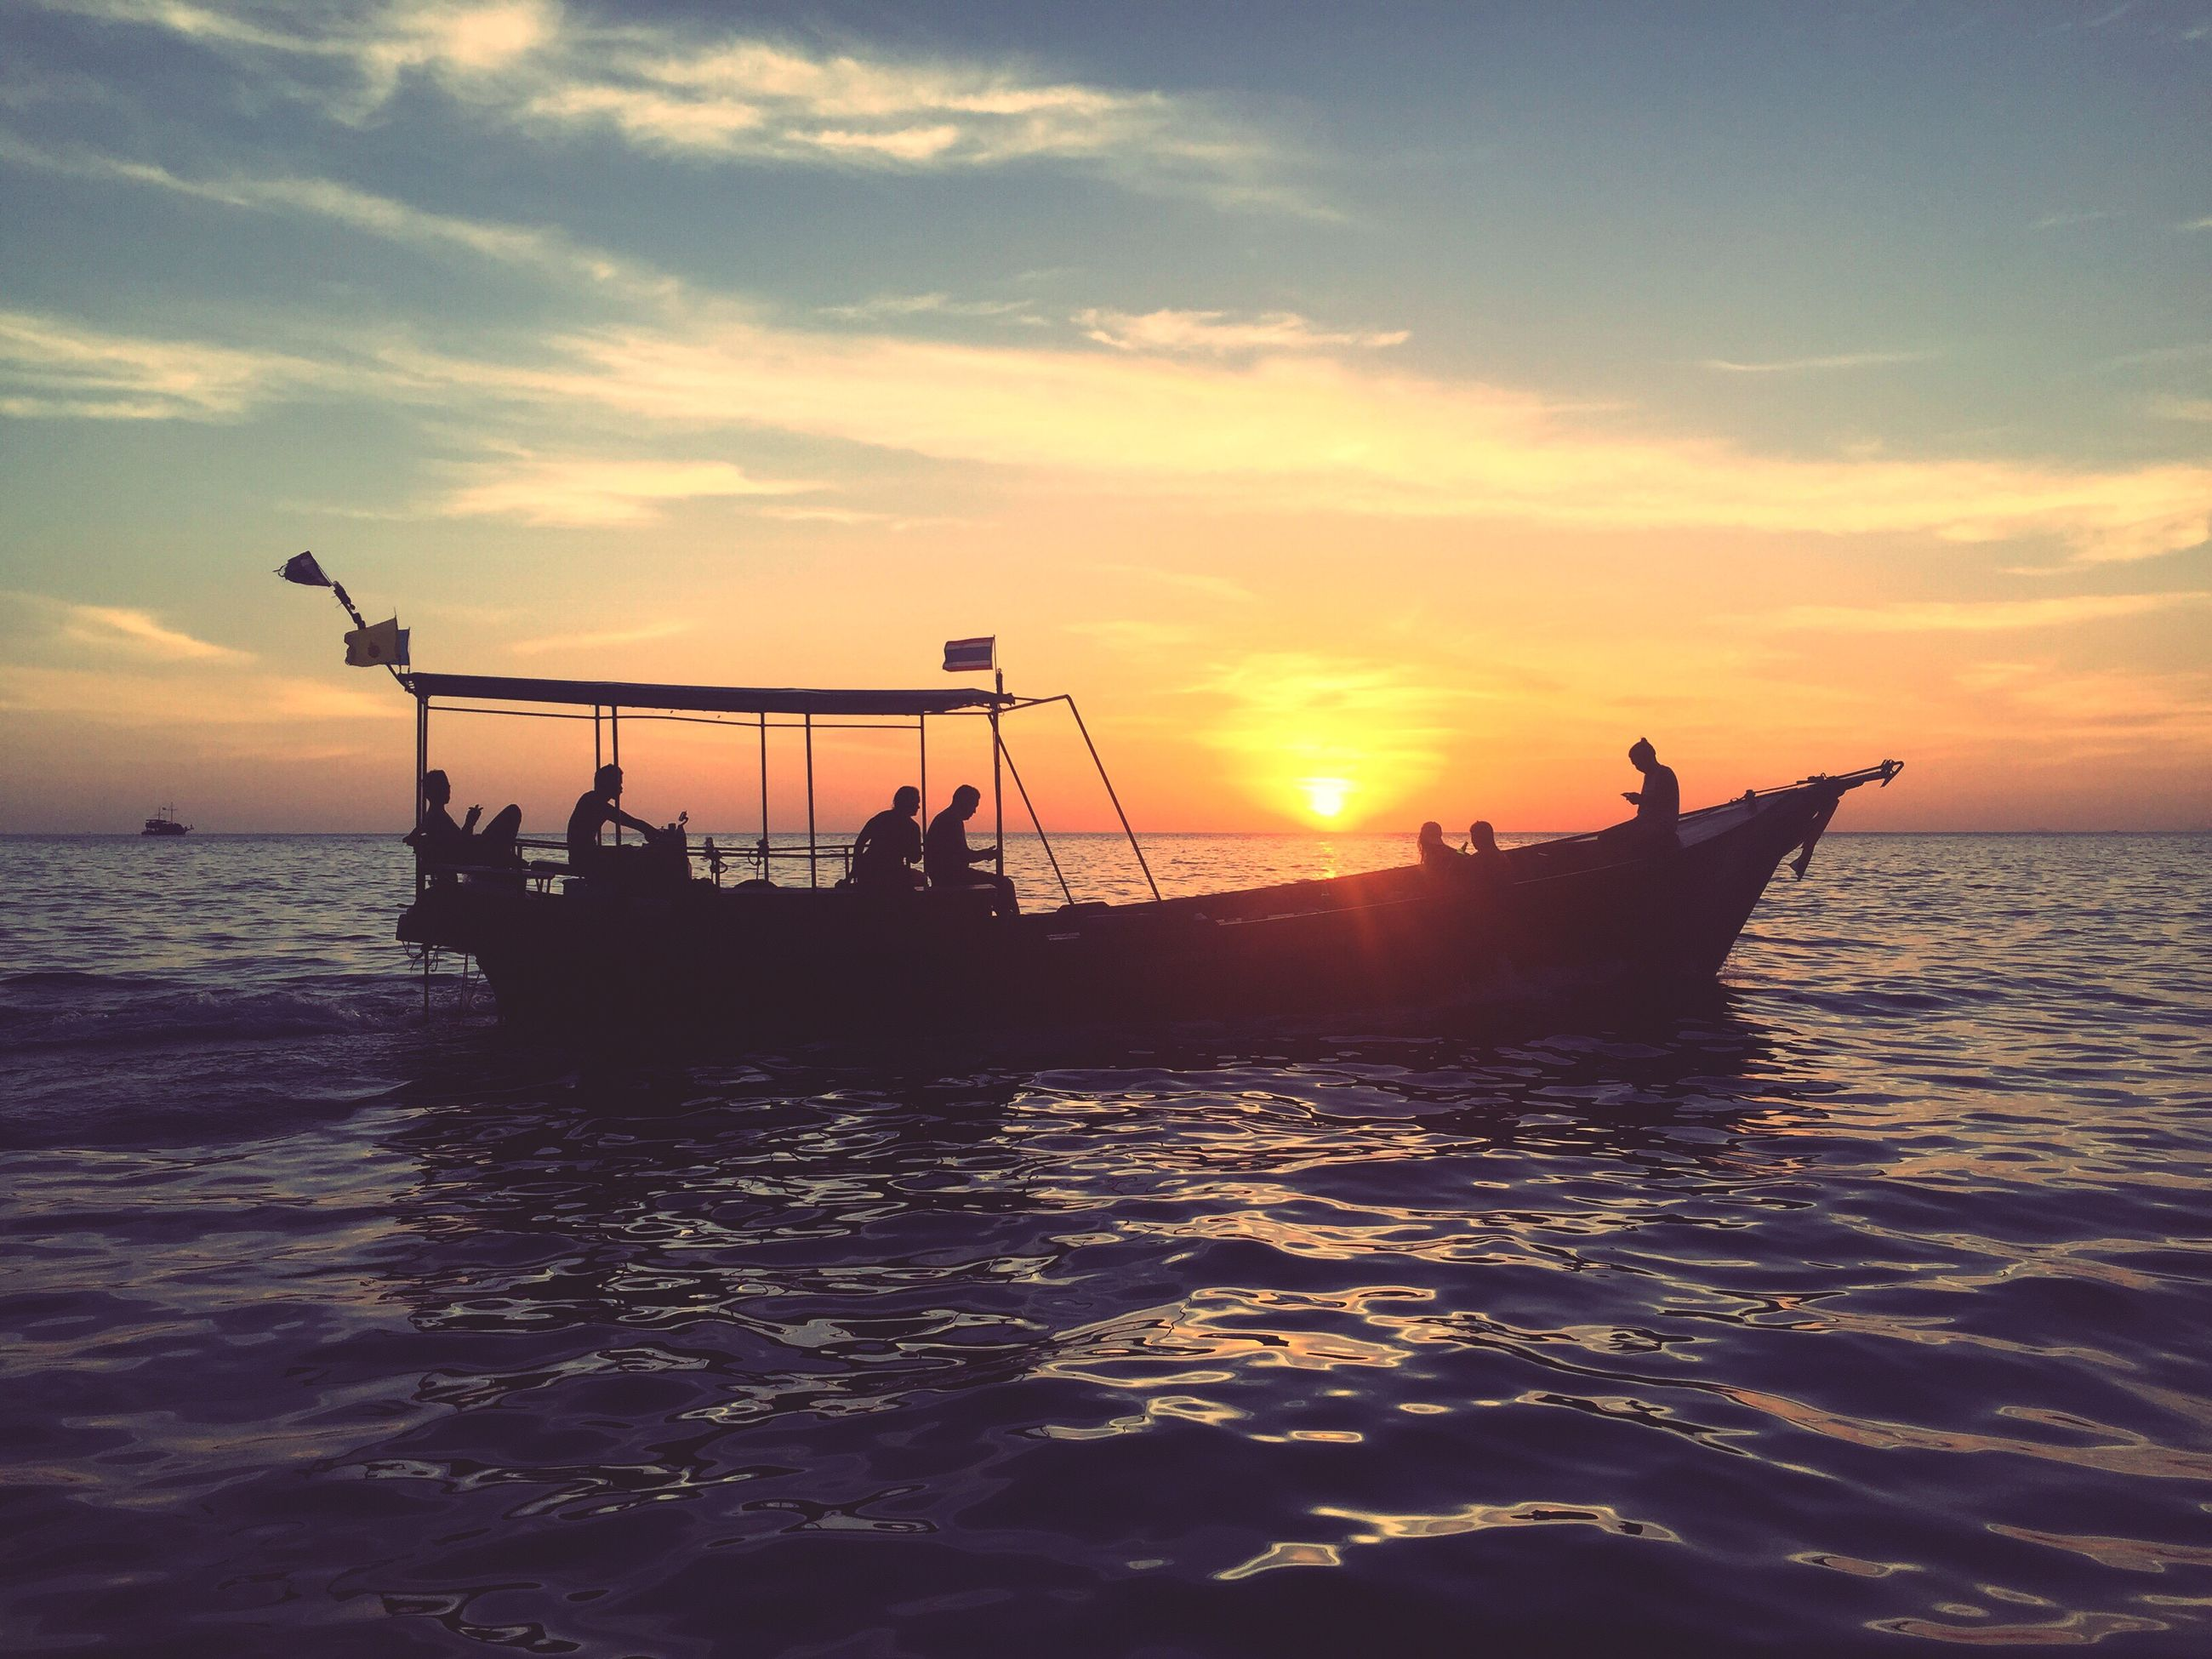 sunset, sea, water, nautical vessel, transportation, outdoors, cloud - sky, sky, nature, no people, day